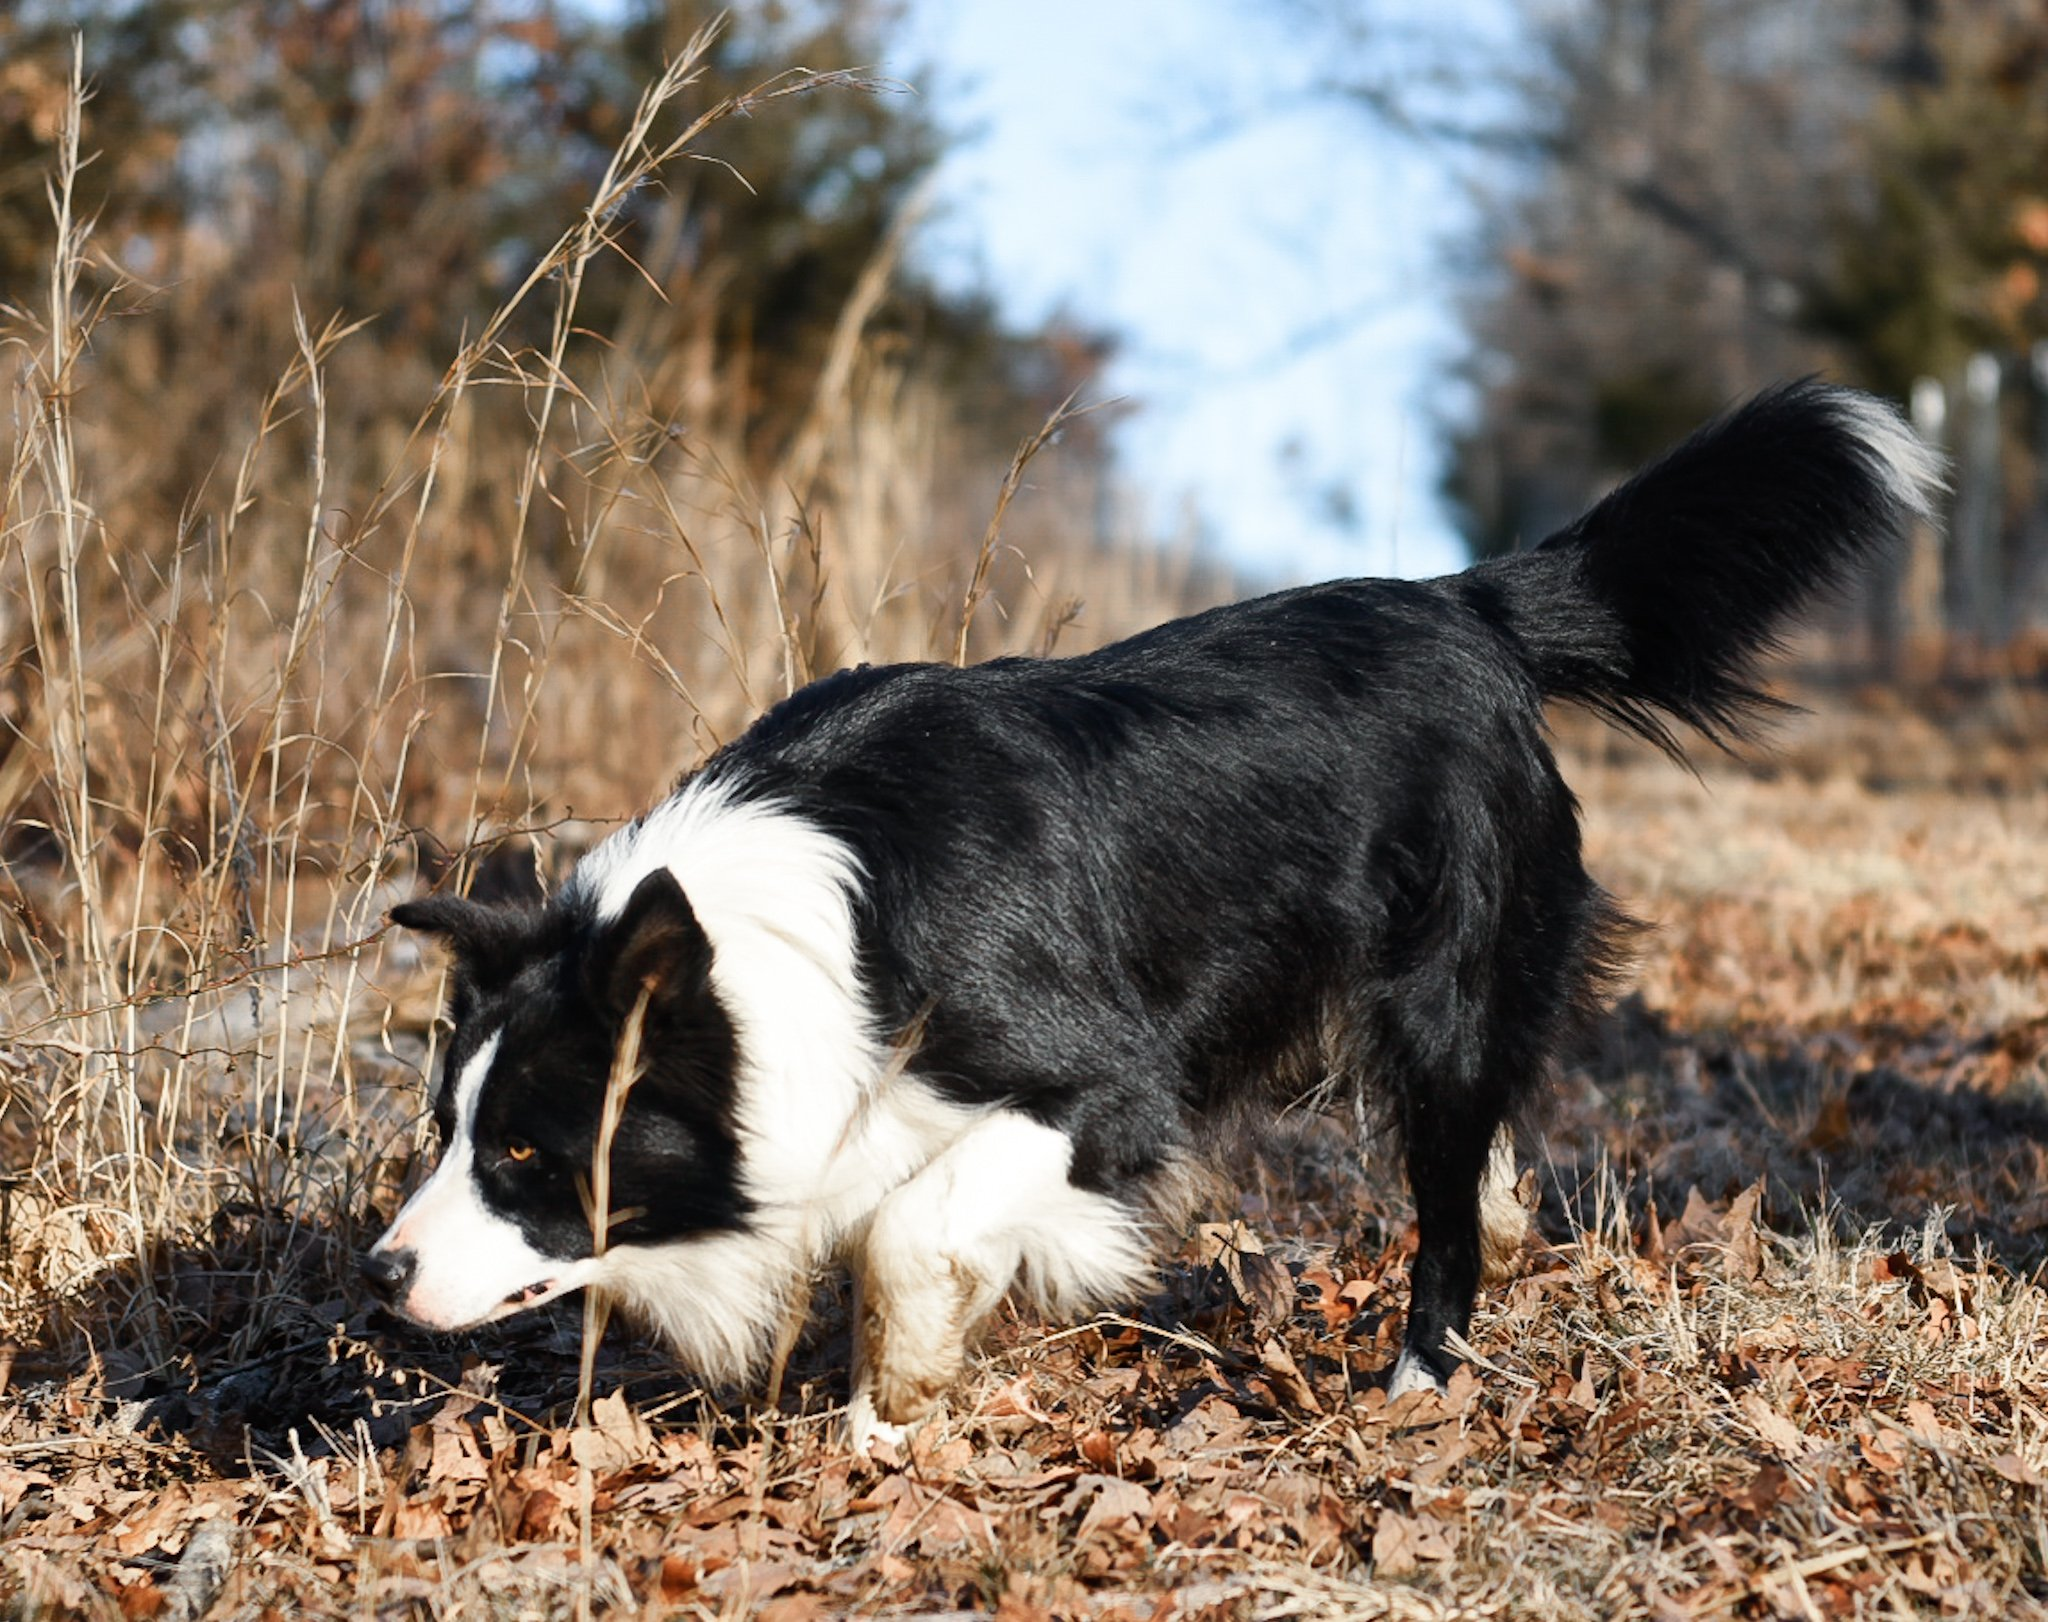 A black and white border collie walking in the forest.